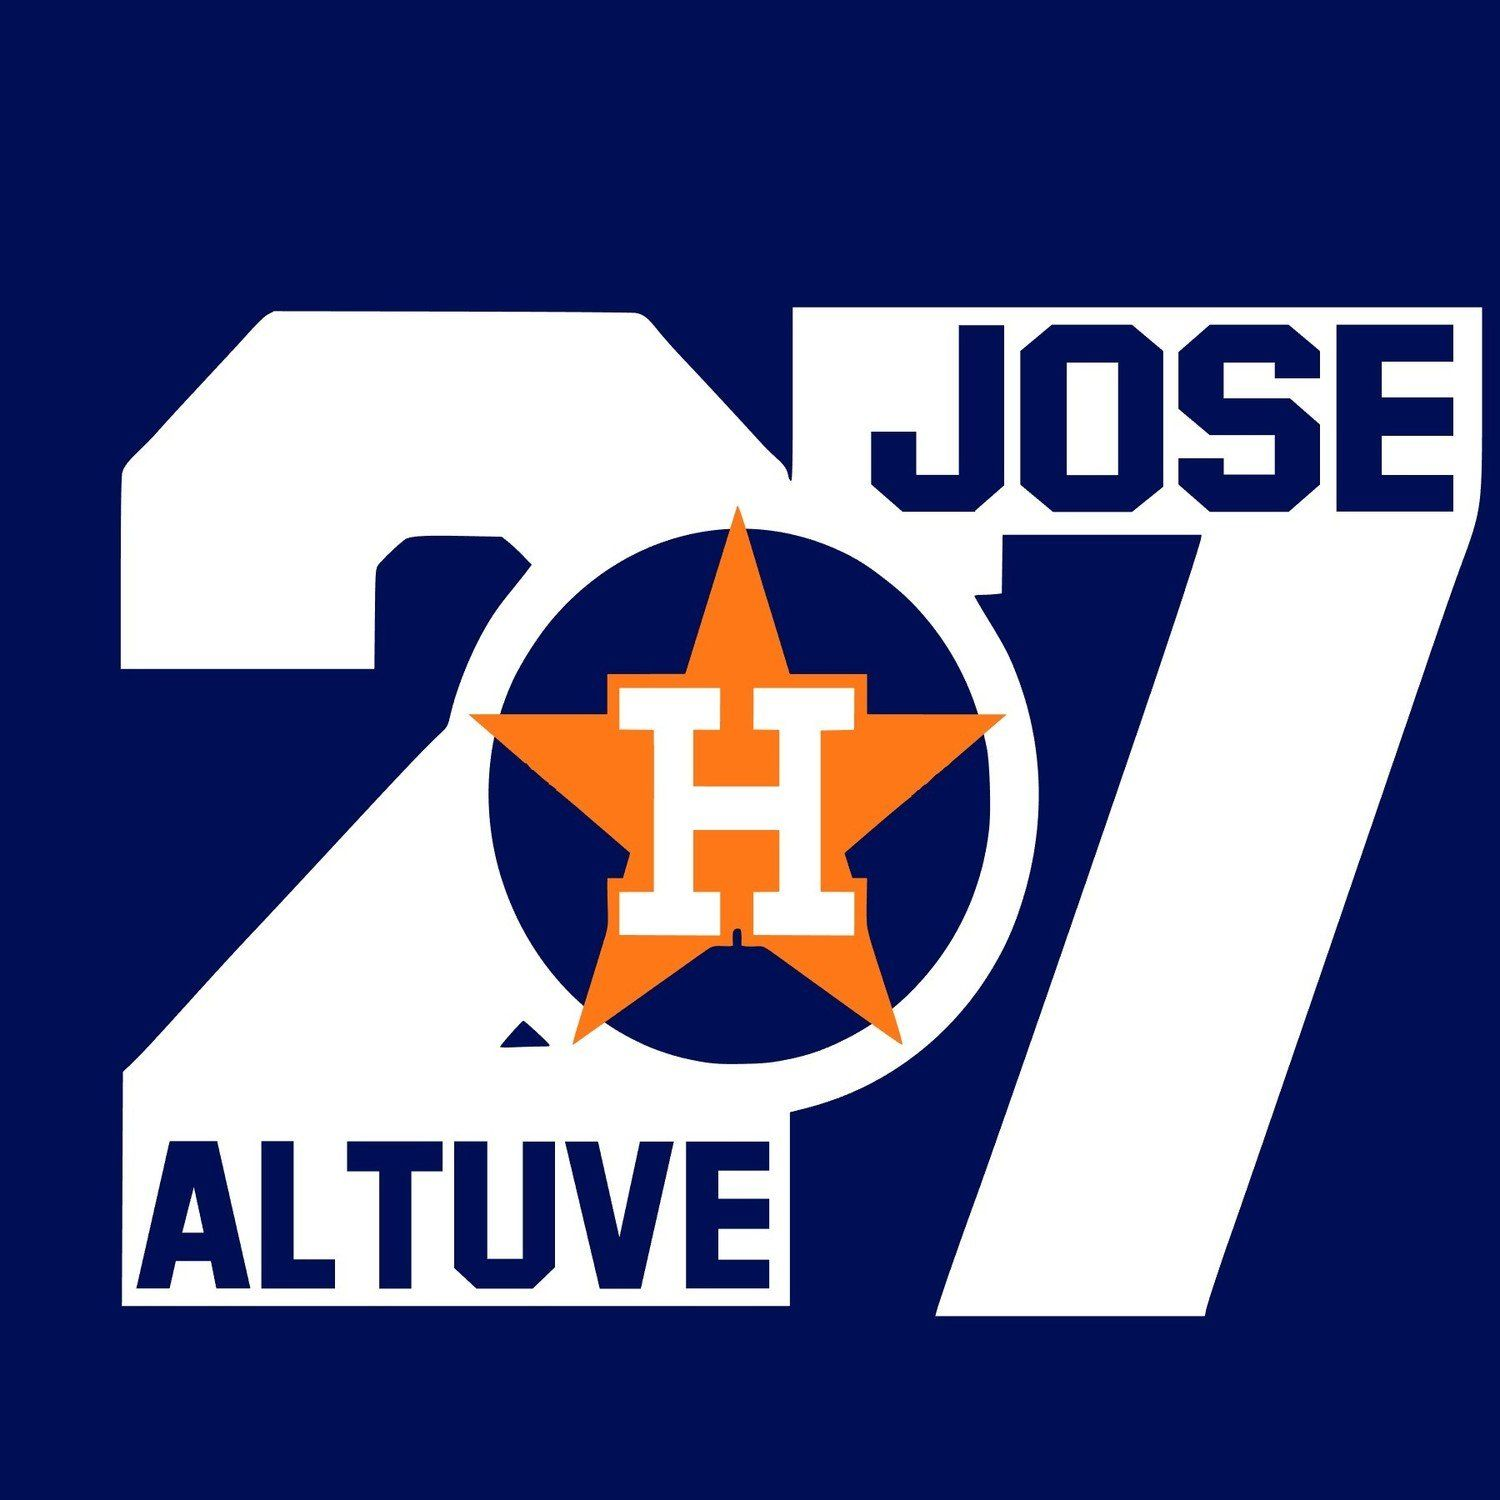 Jose Altuve 27 Houston Astros V2 Svg Jpg Digital Download Astros Svg Files Svg Files Custom Svgs Check Jose Altuve Basketball T Shirt Designs Team Decal